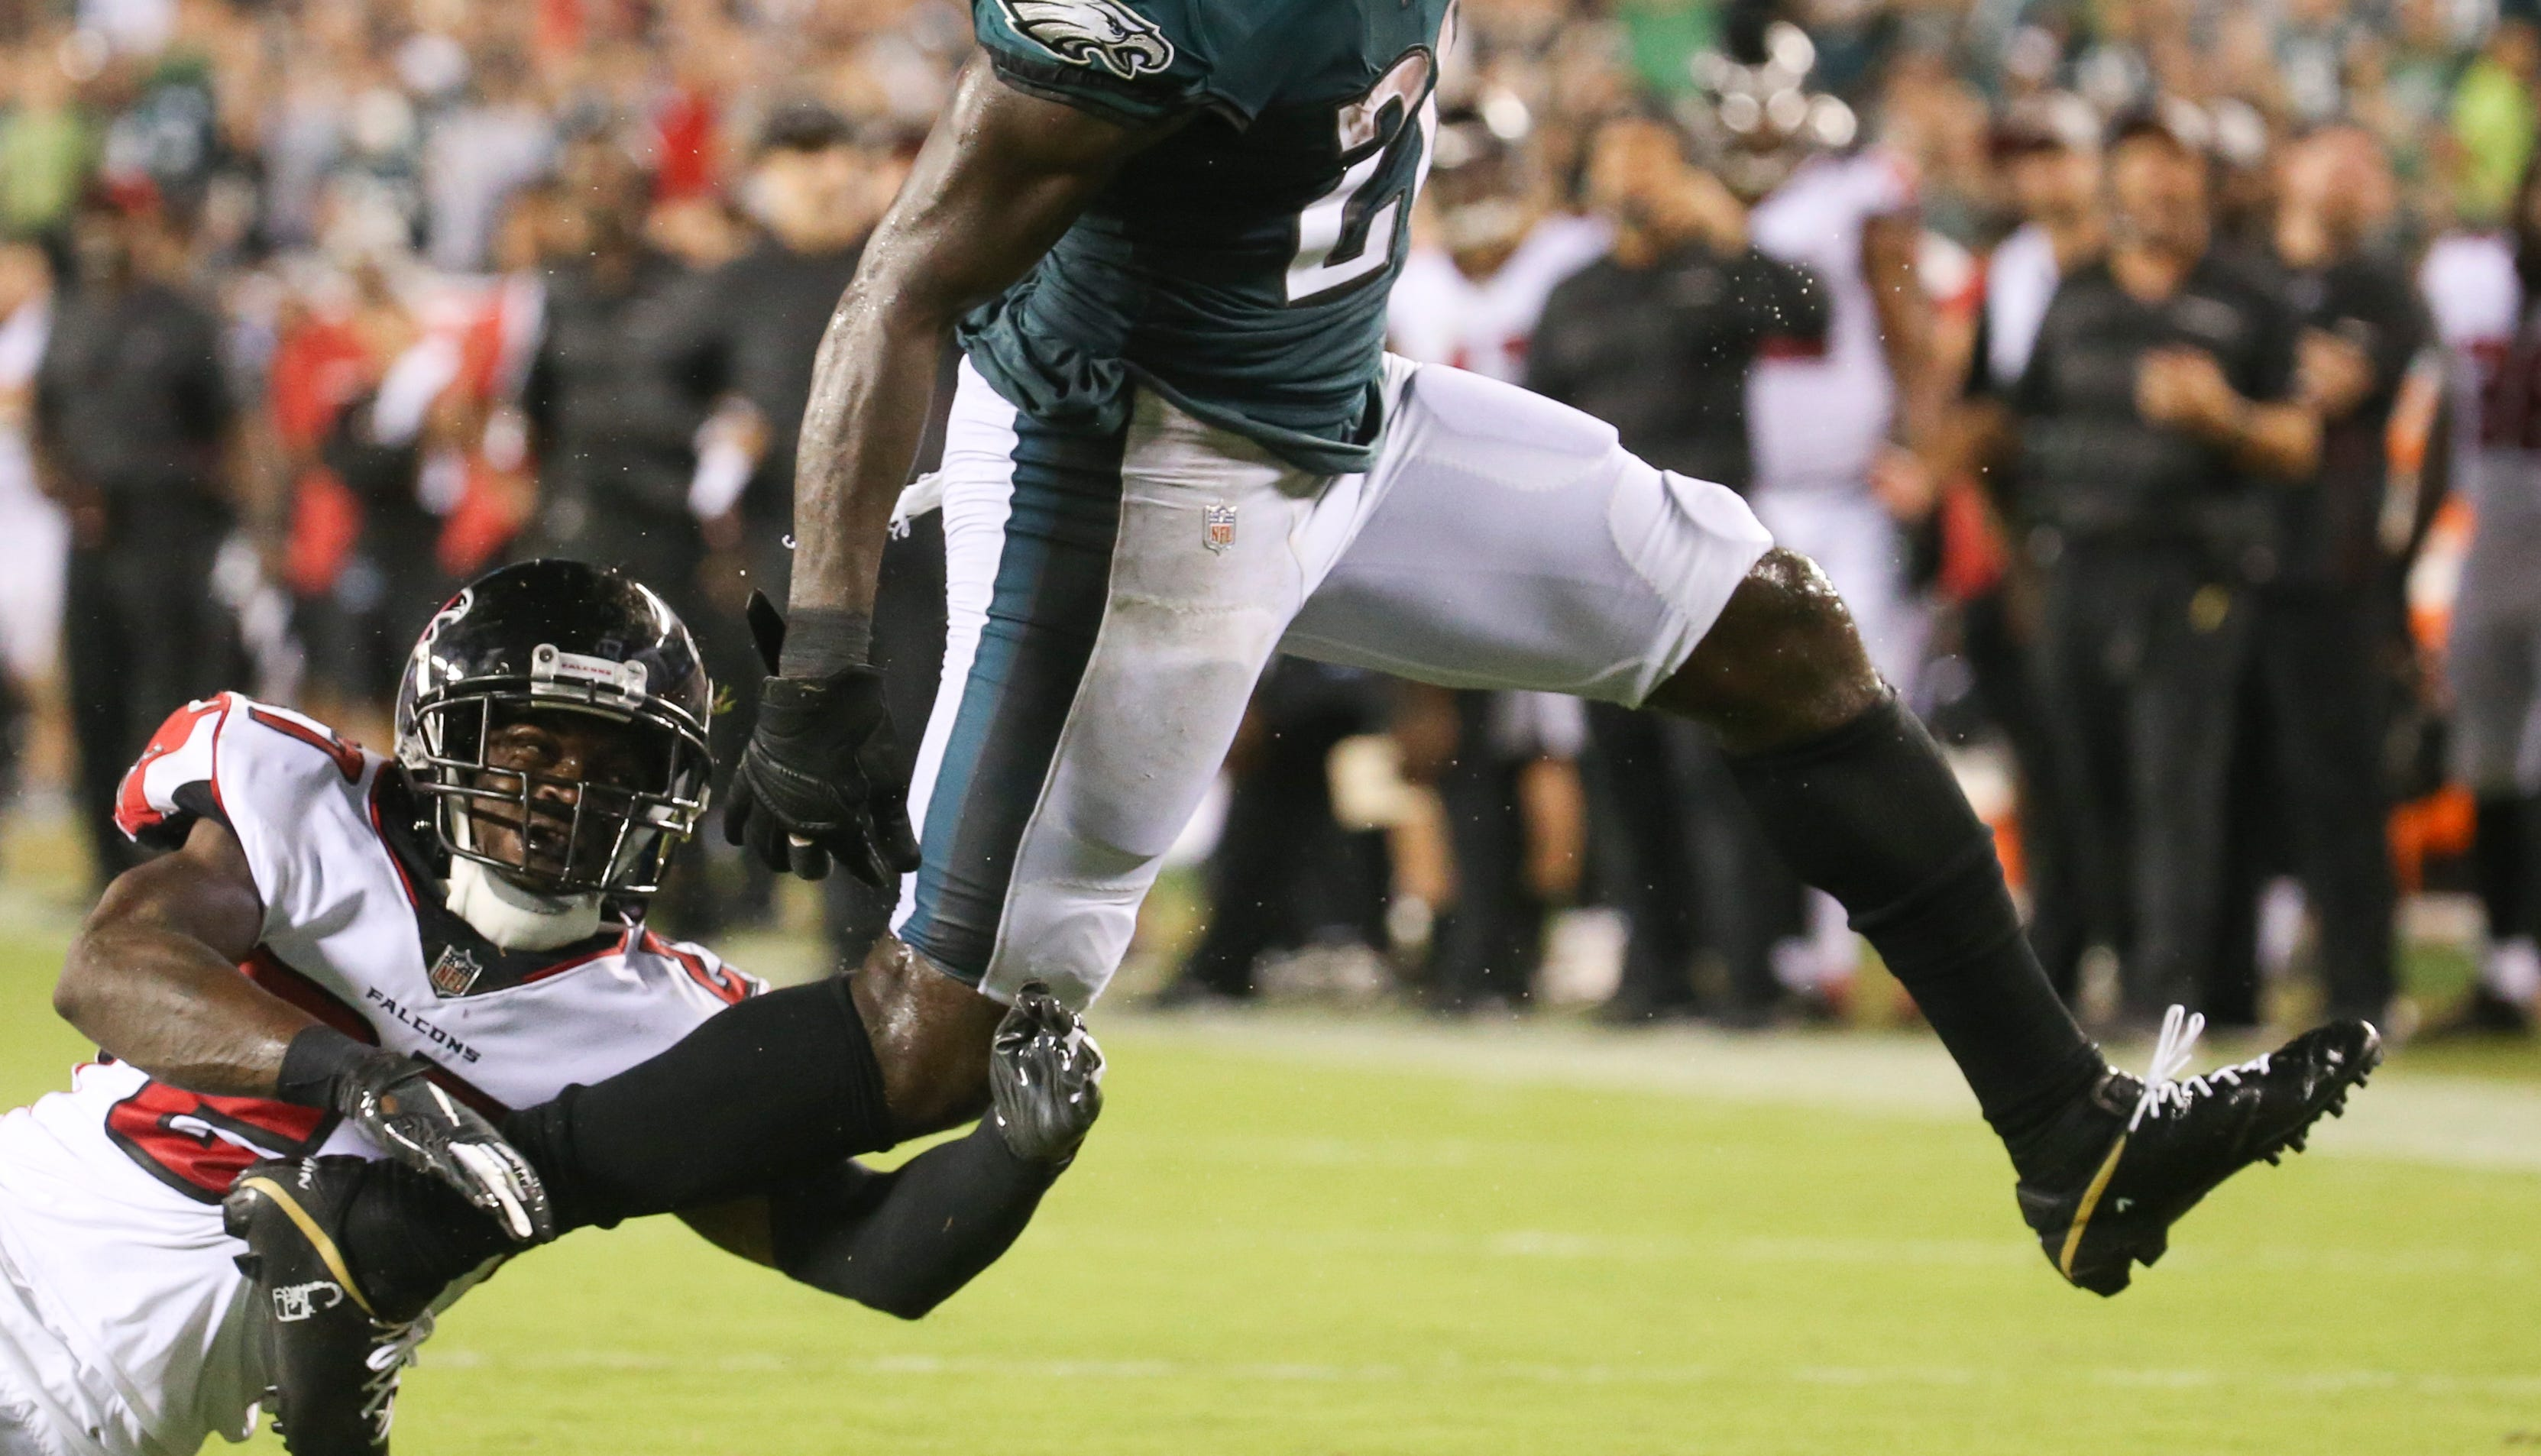 """Running backs Jay Ajayi and Darren Sproles were listed as """"out"""" for the game Sunday, and Corey Clement might not play, either."""